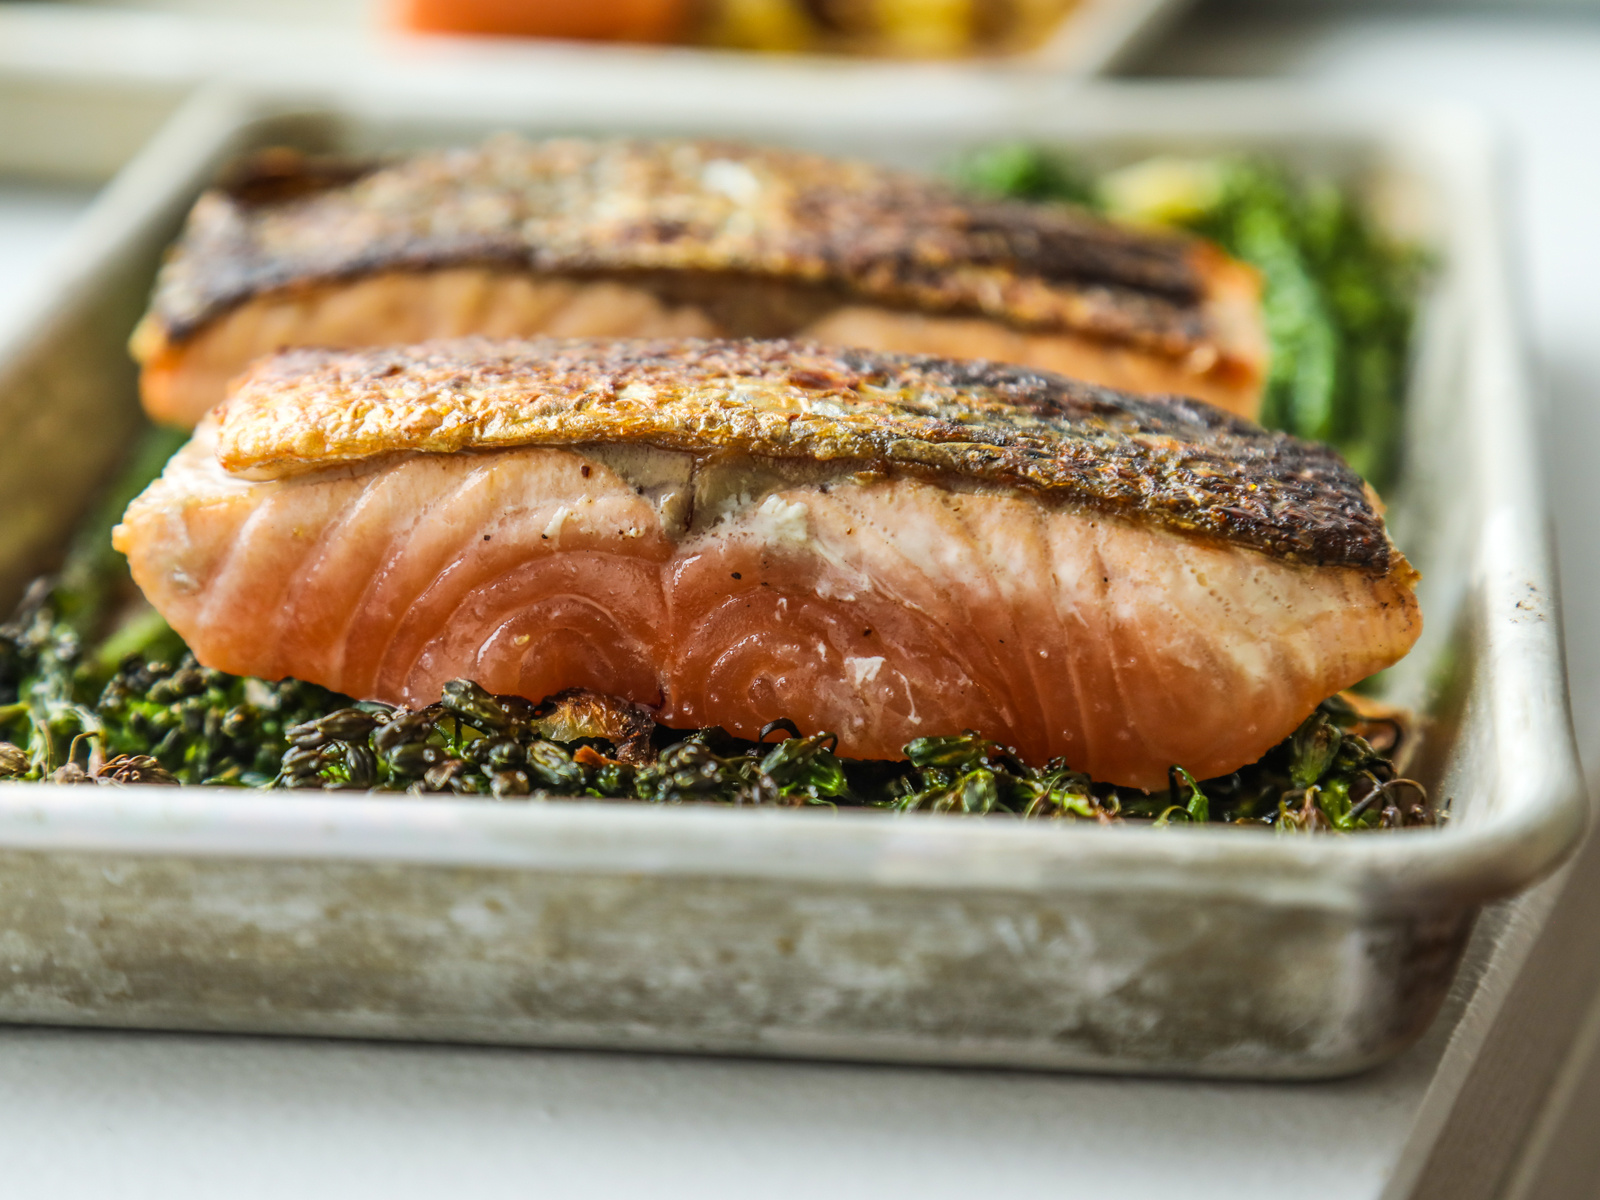 Perfectly cooked salmon filets